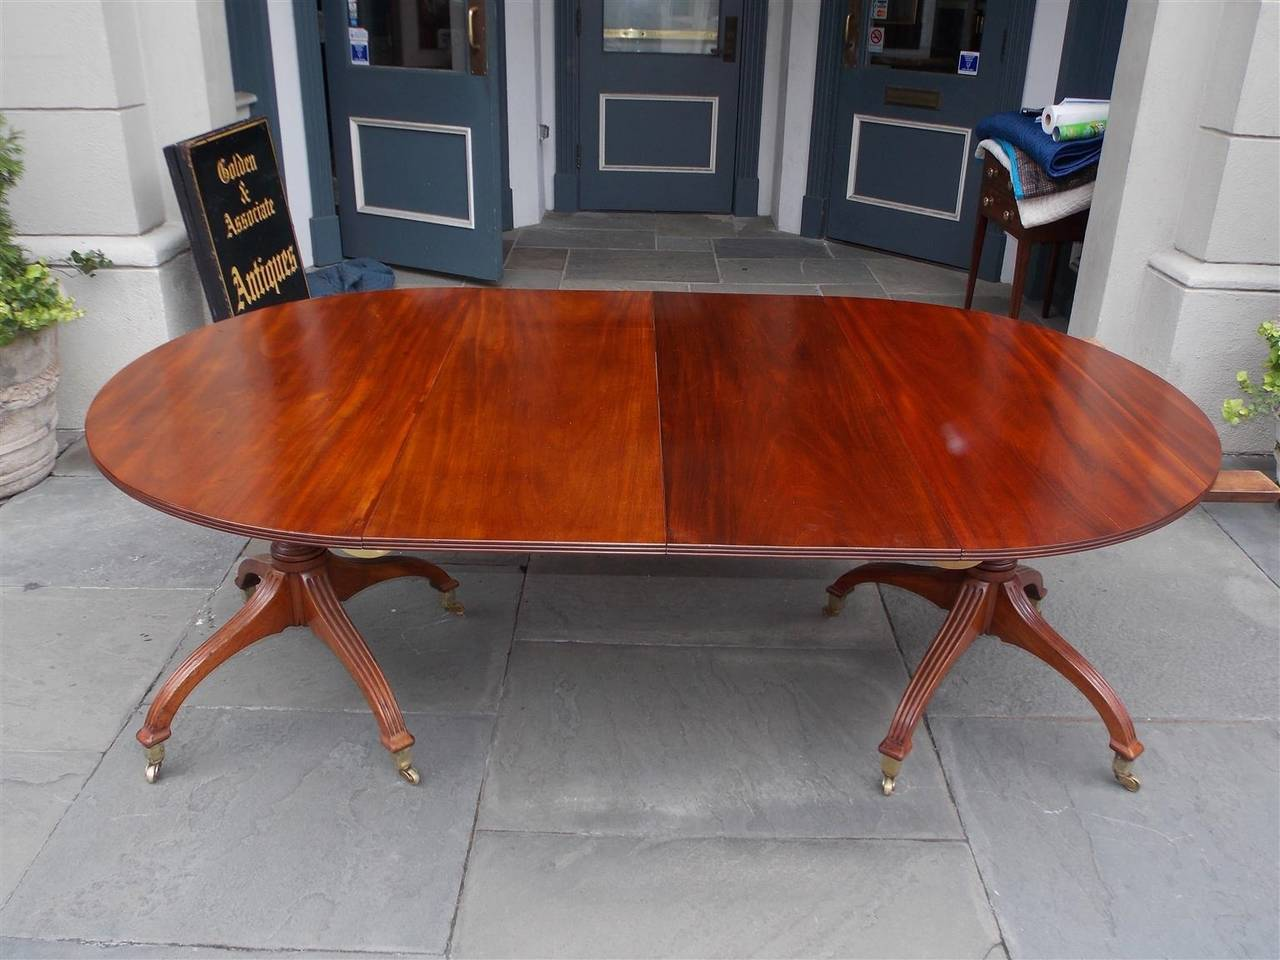 Early 19th Century English Mahogany Double Pedestal Dining Table, Circa 1800 For Sale